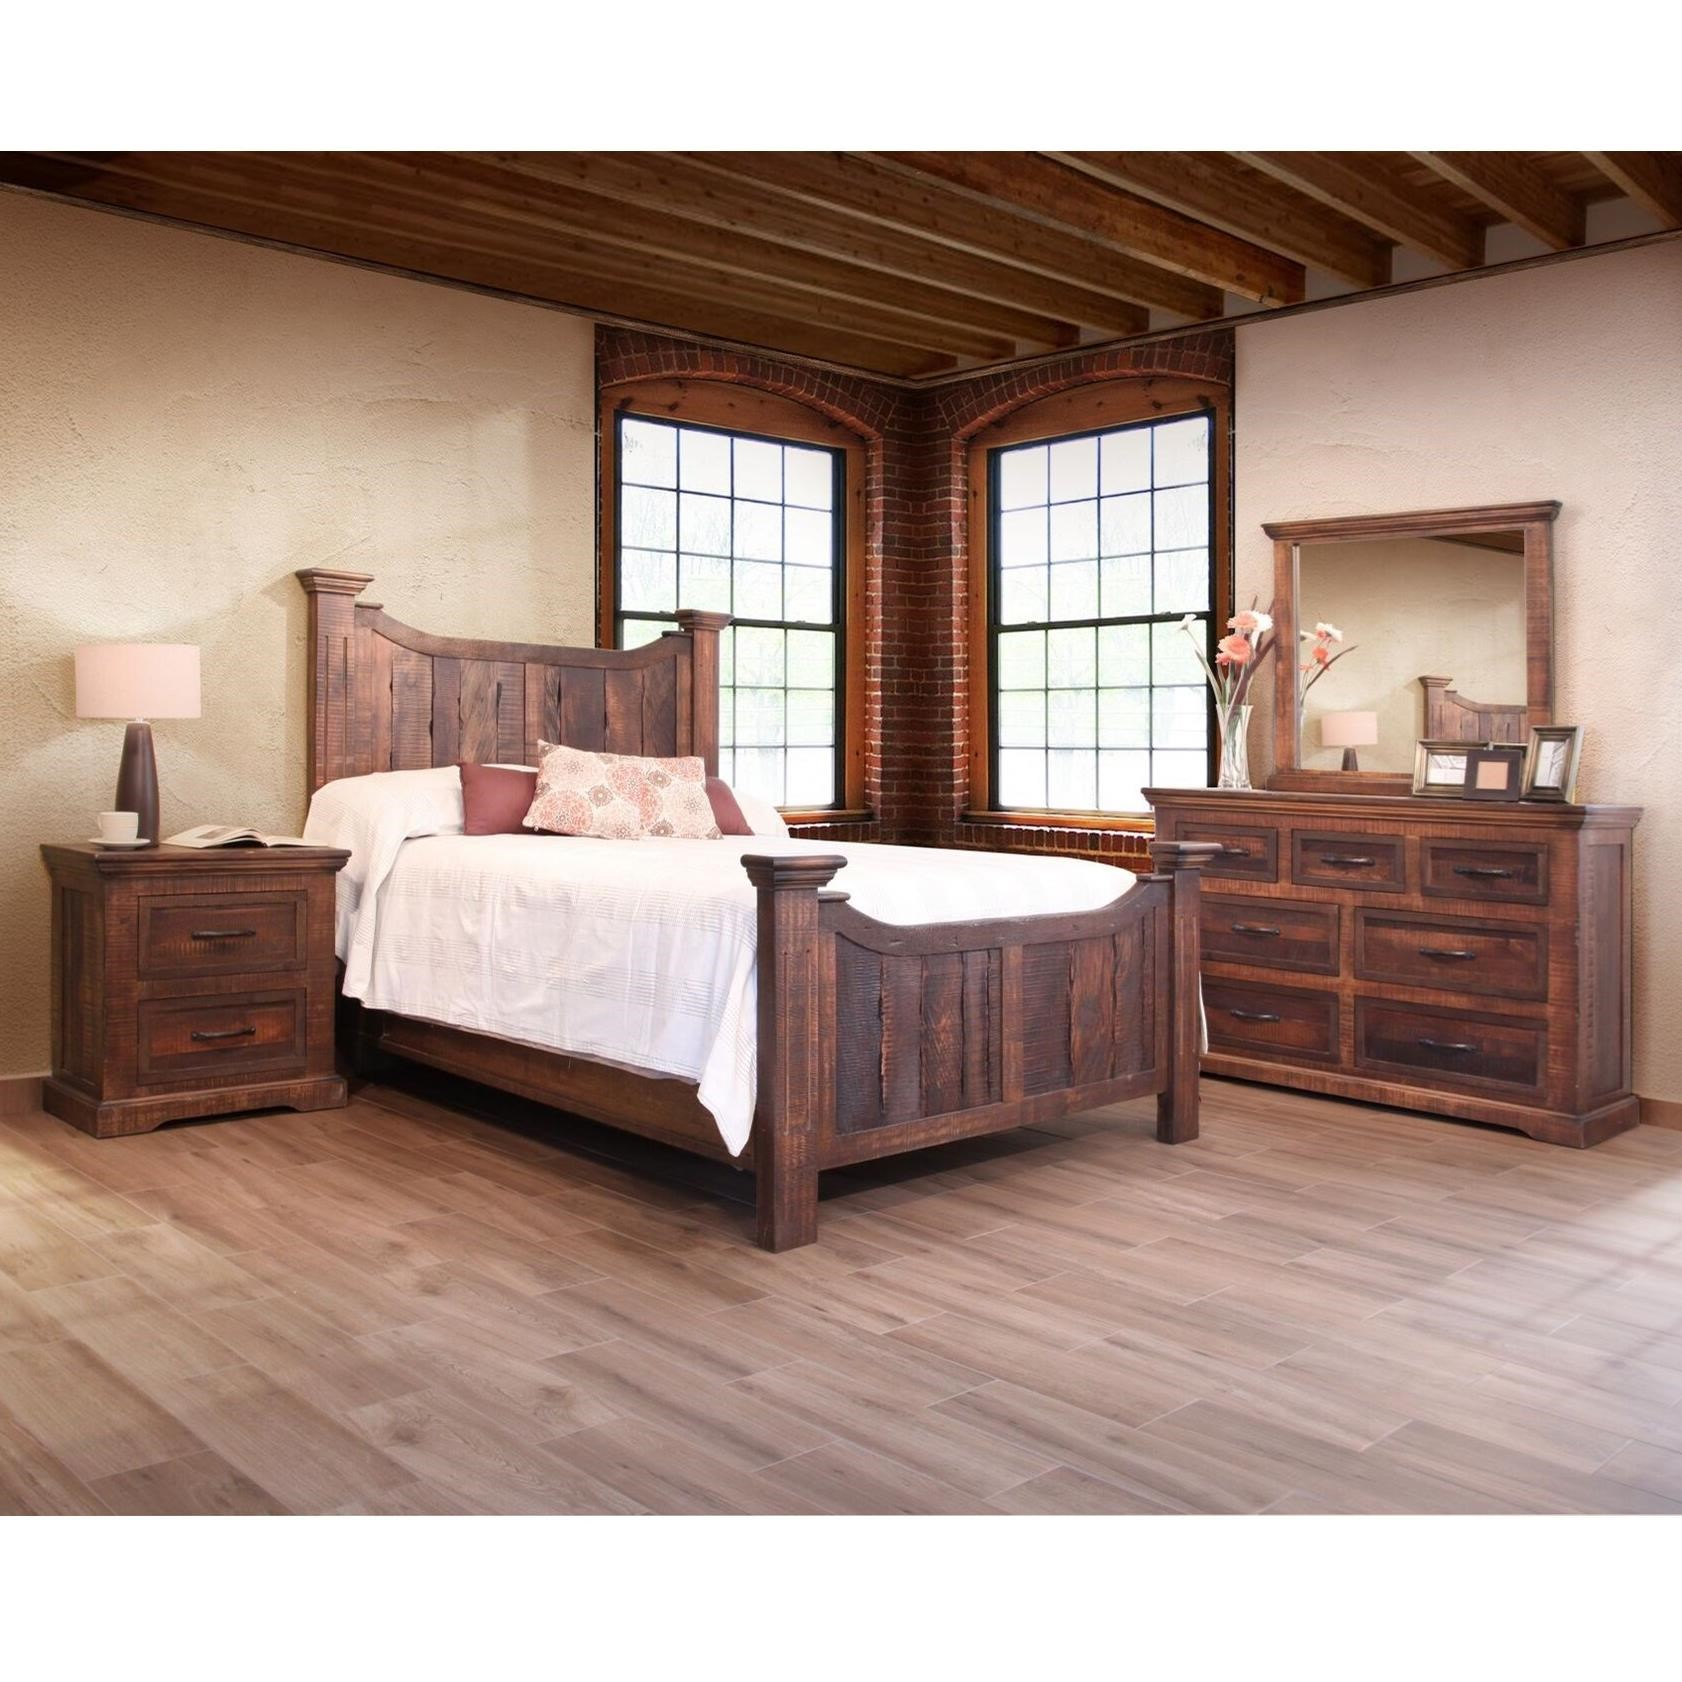 Madeira California King Bedroom Group by International Furniture Direct at Gill Brothers Furniture